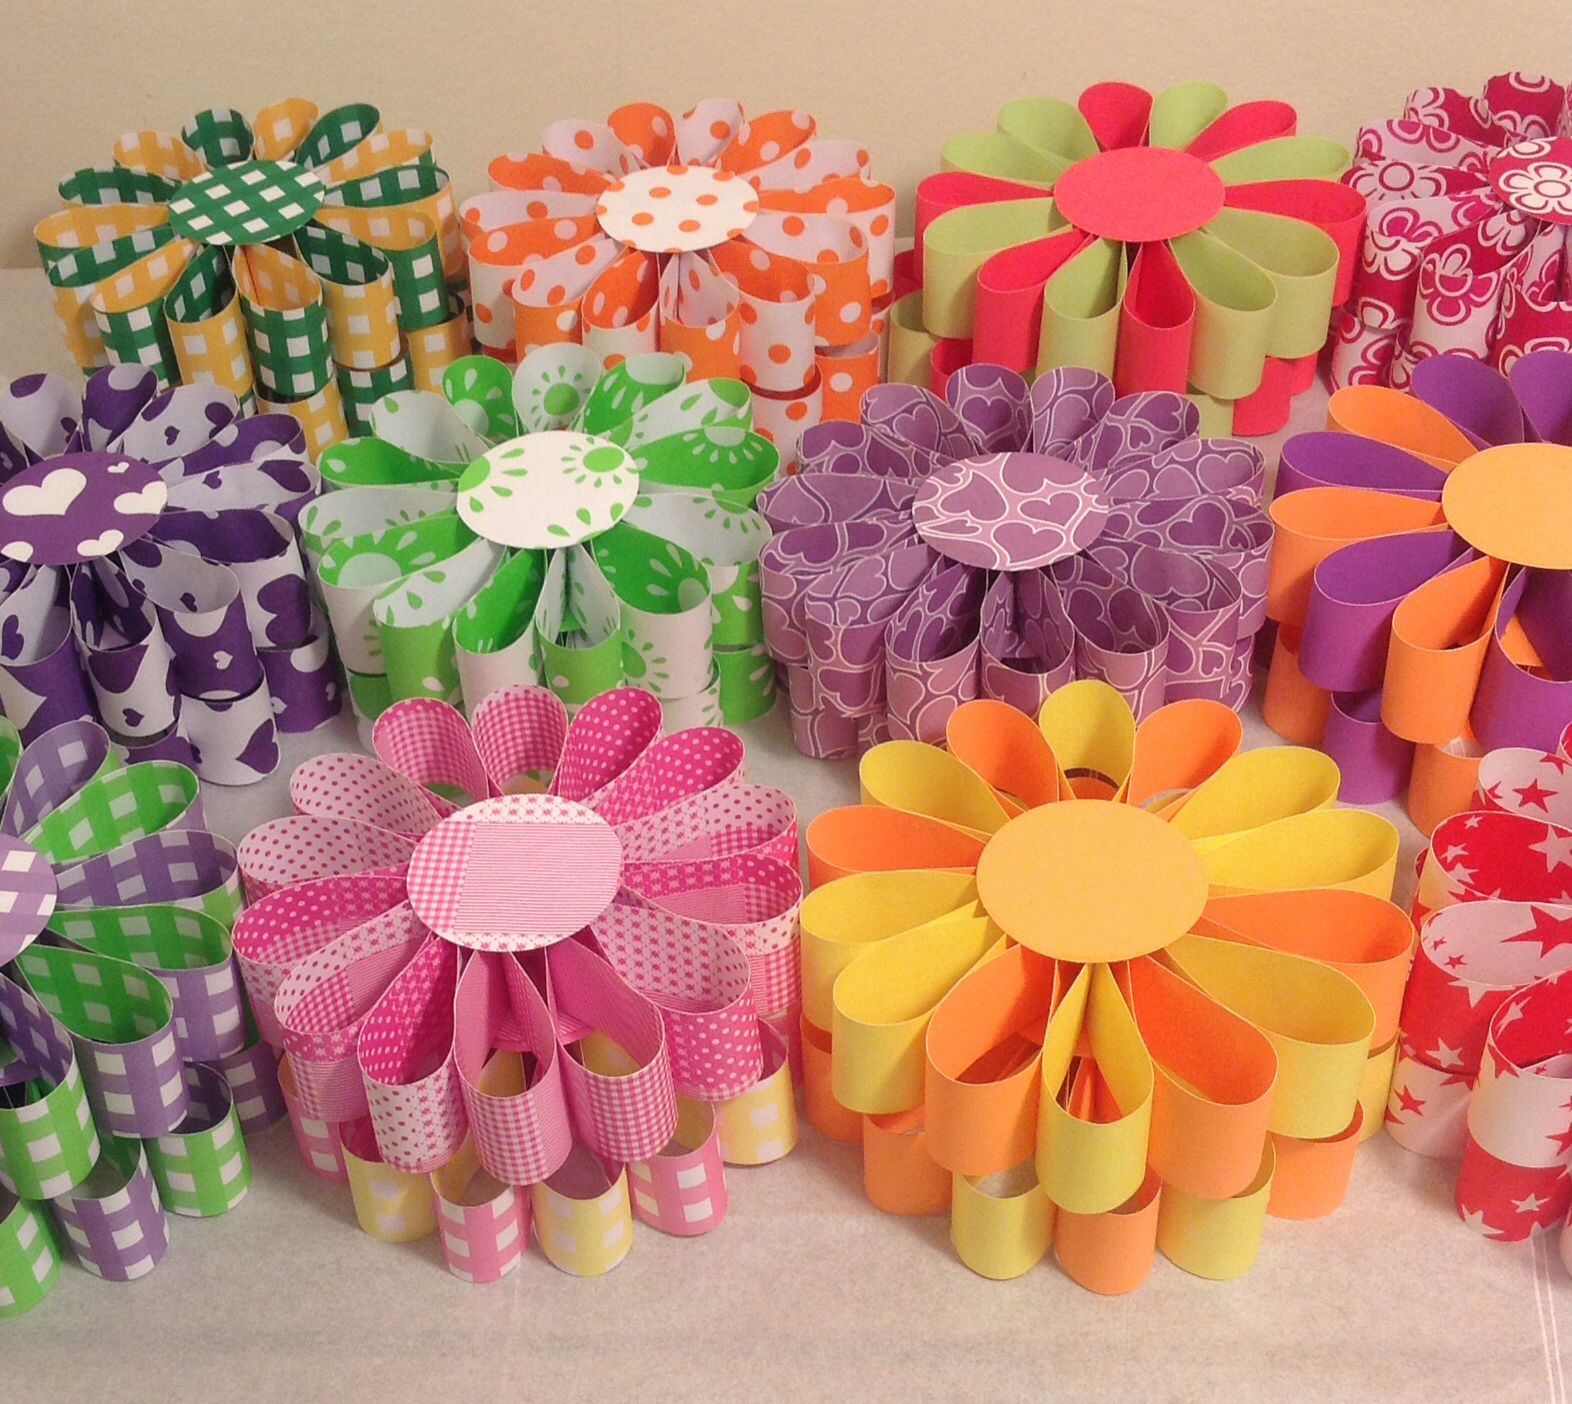 Flores con cartulina bifaz manualidades pinterest for Manualidades faciles decoracion